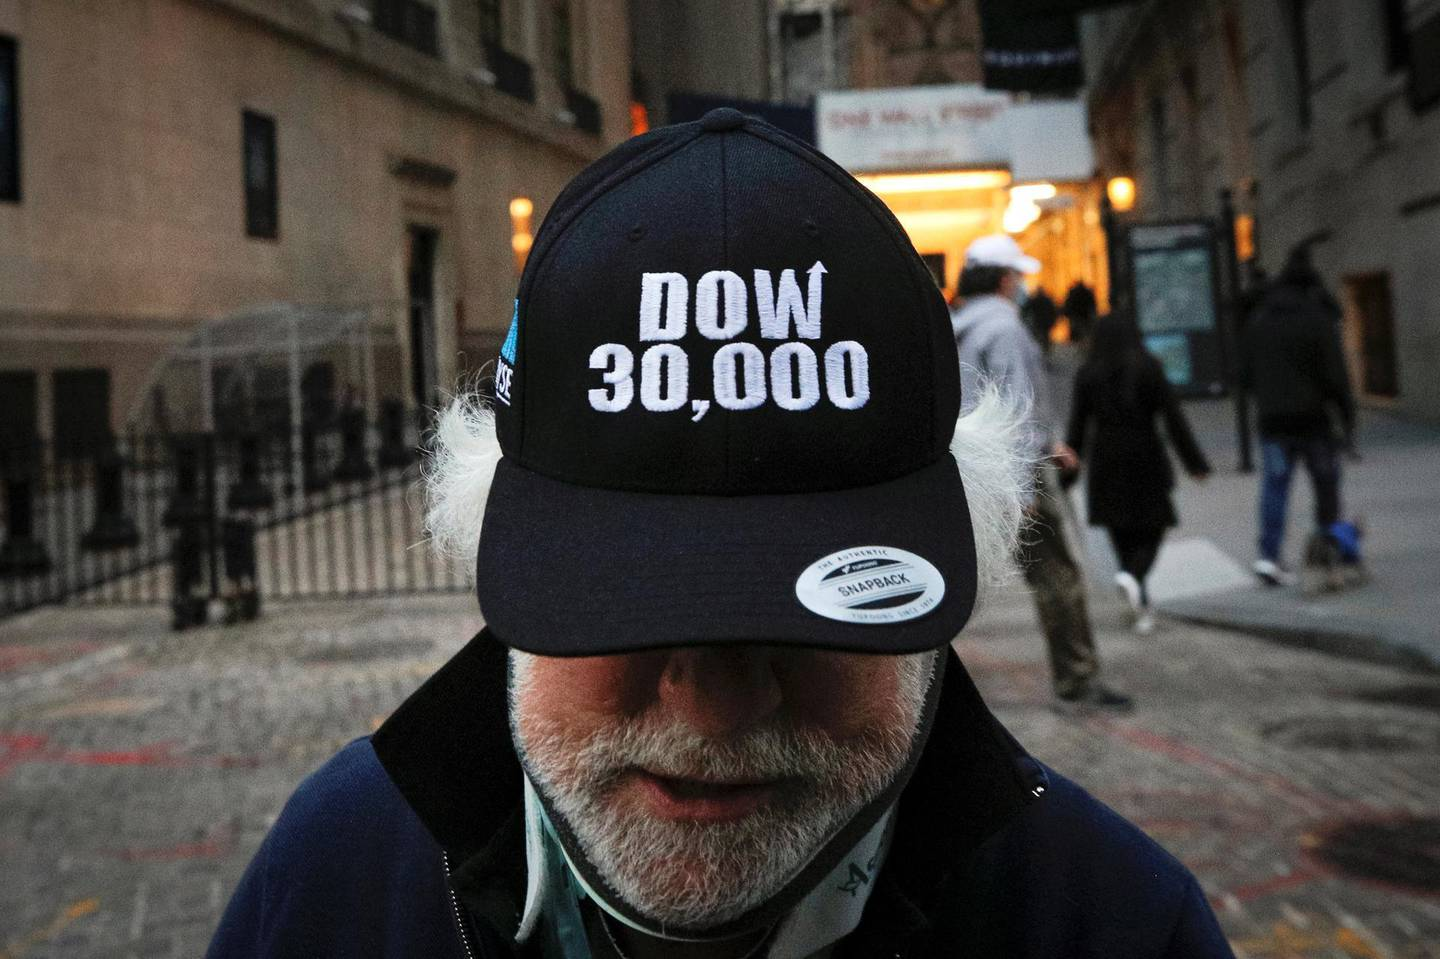 Trader Peter Tuchman wears a DOW 30,000 hat as he greets friends outside the New York Stock Exchange (NYSE) in New York, U.S., November 24, 2020. REUTERS/Brendan McDermid